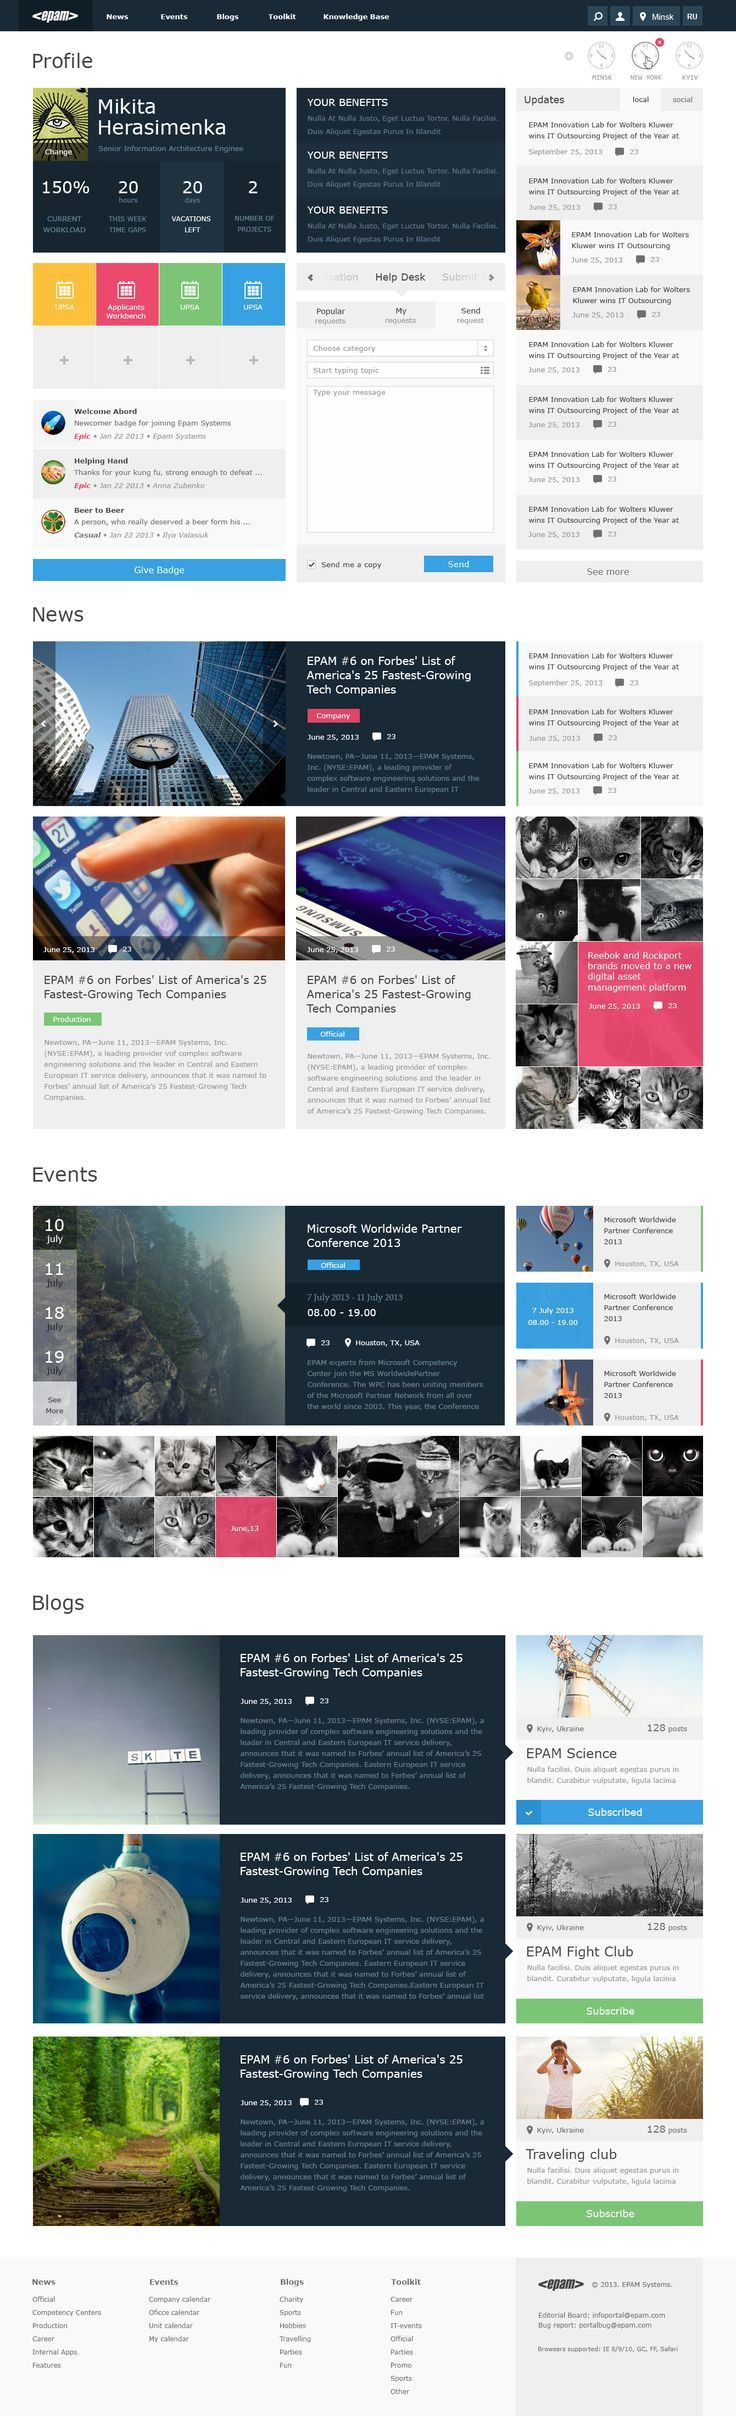 new fresh web design inspiration - Intranet Design Ideas